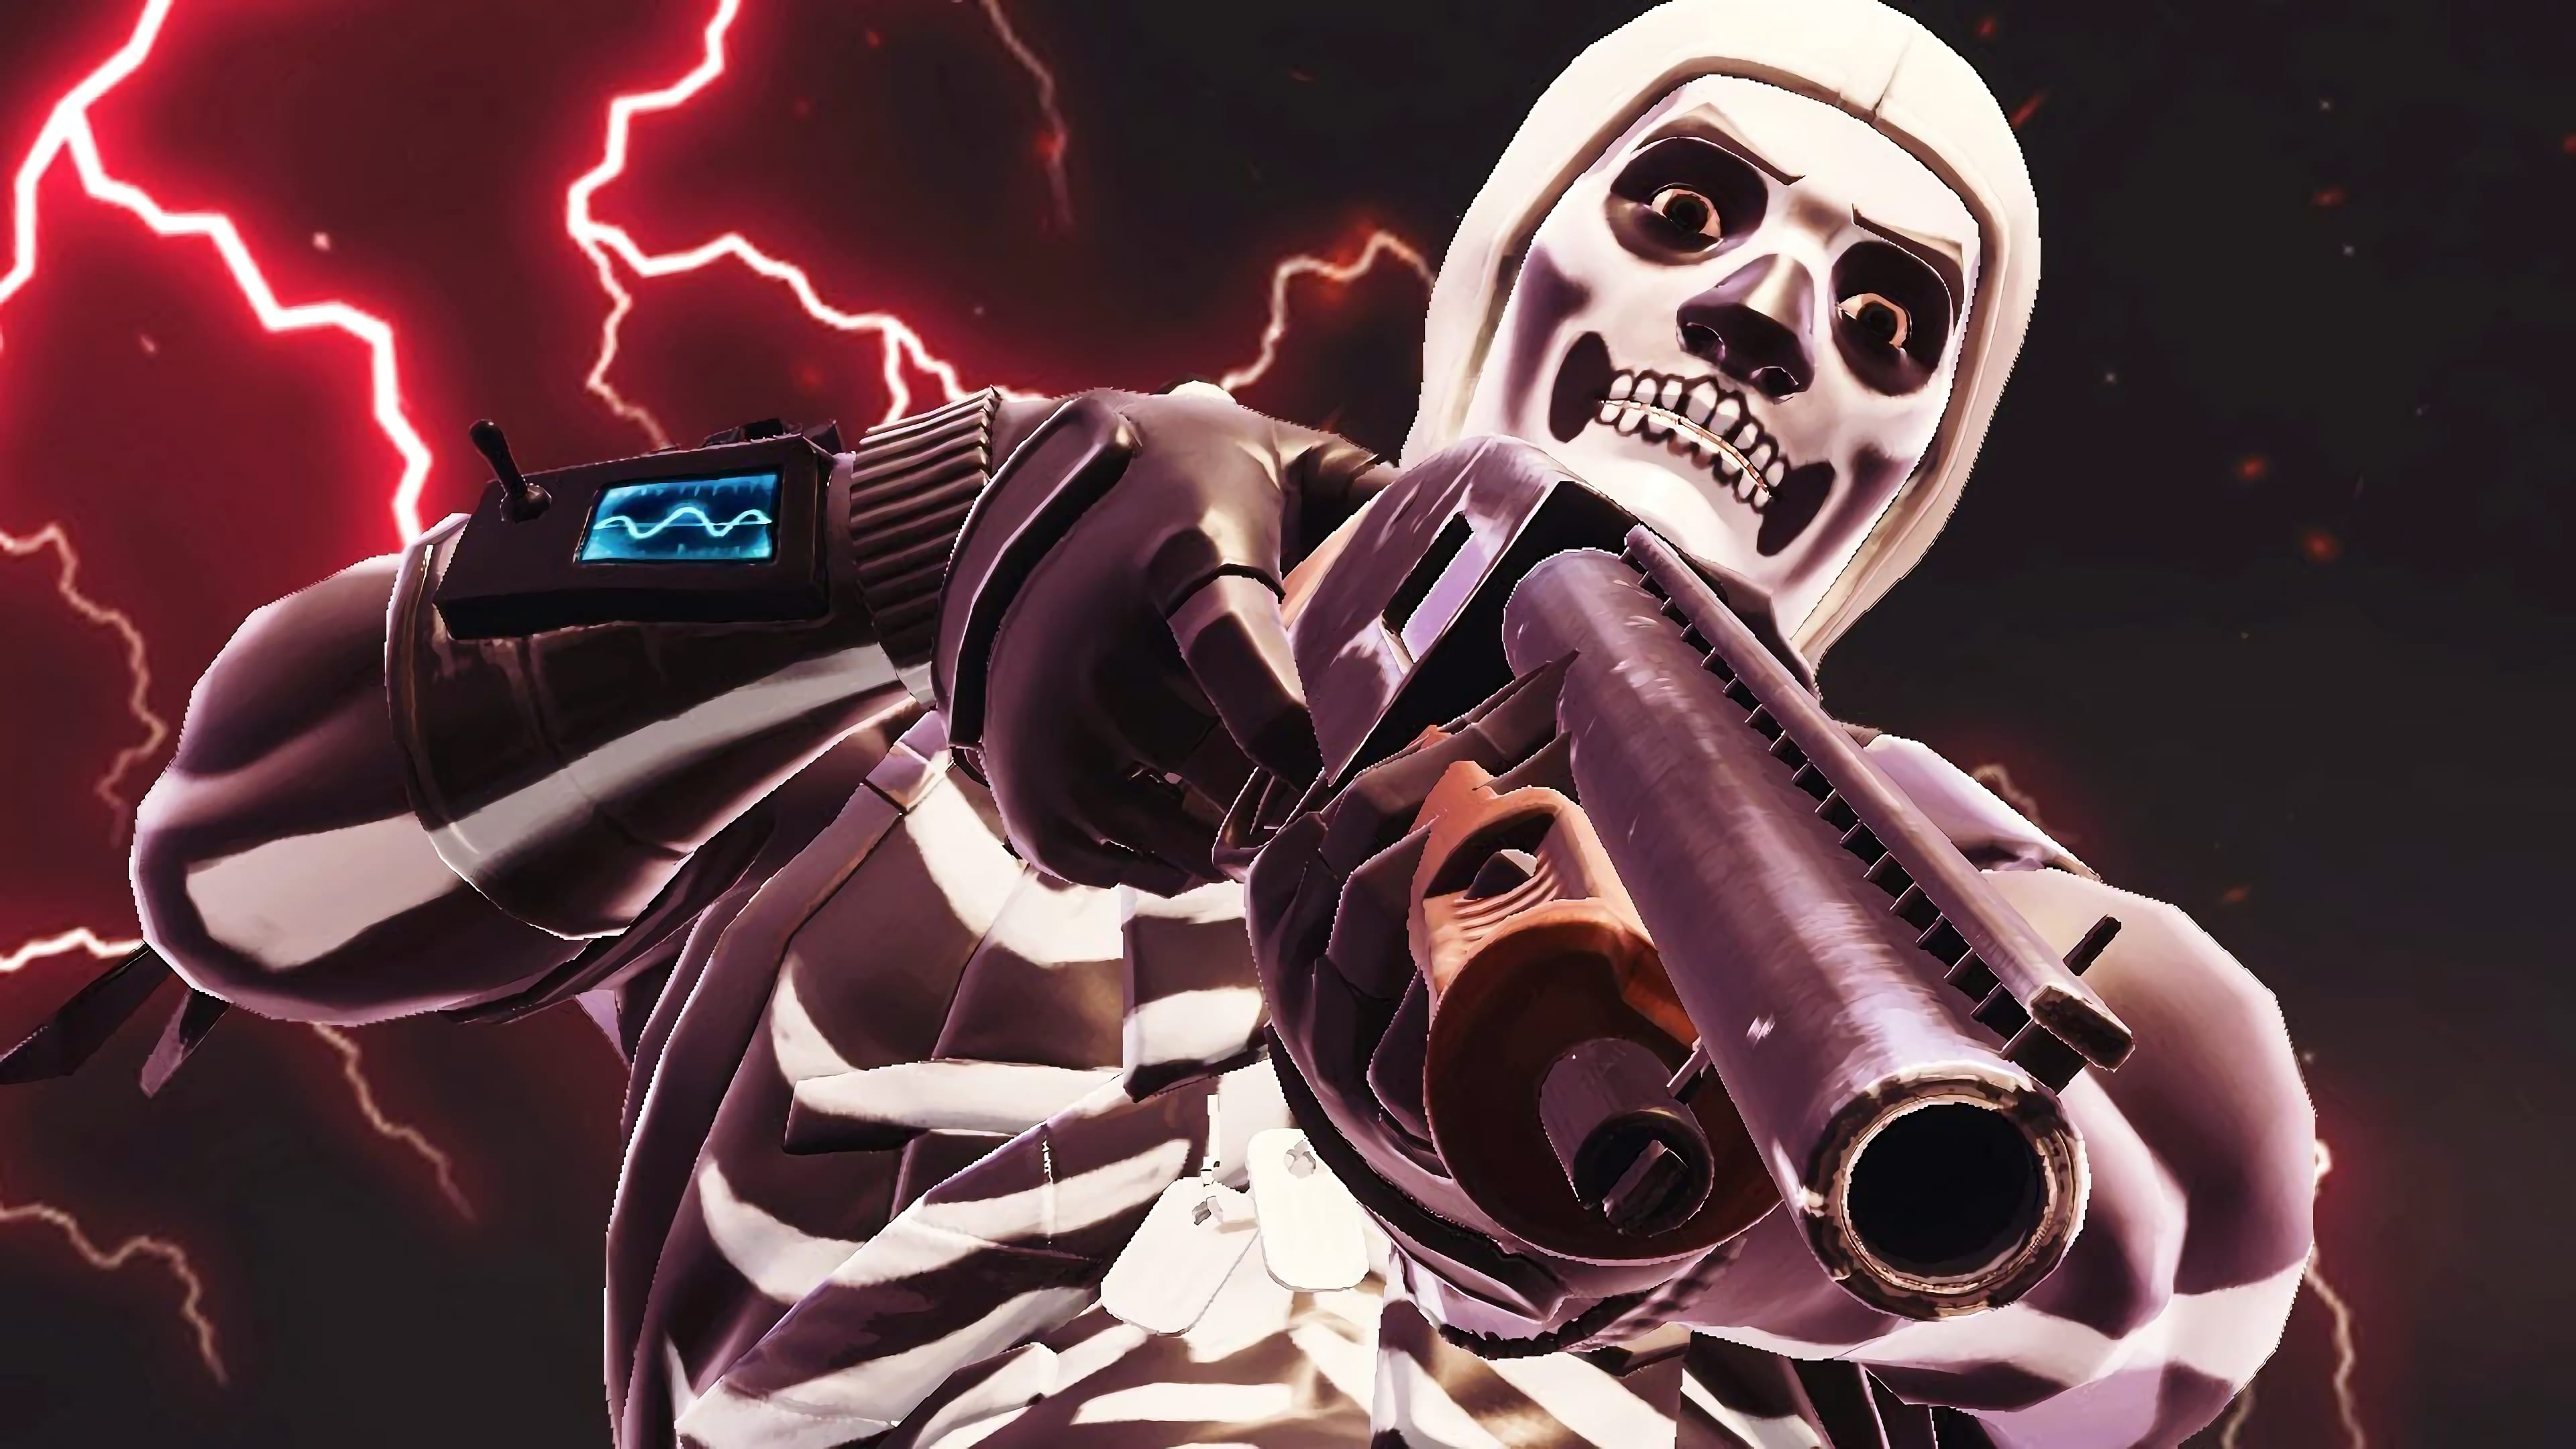 3840x2160 Fortnite Wallpaper Skull Trooper | HaverHill